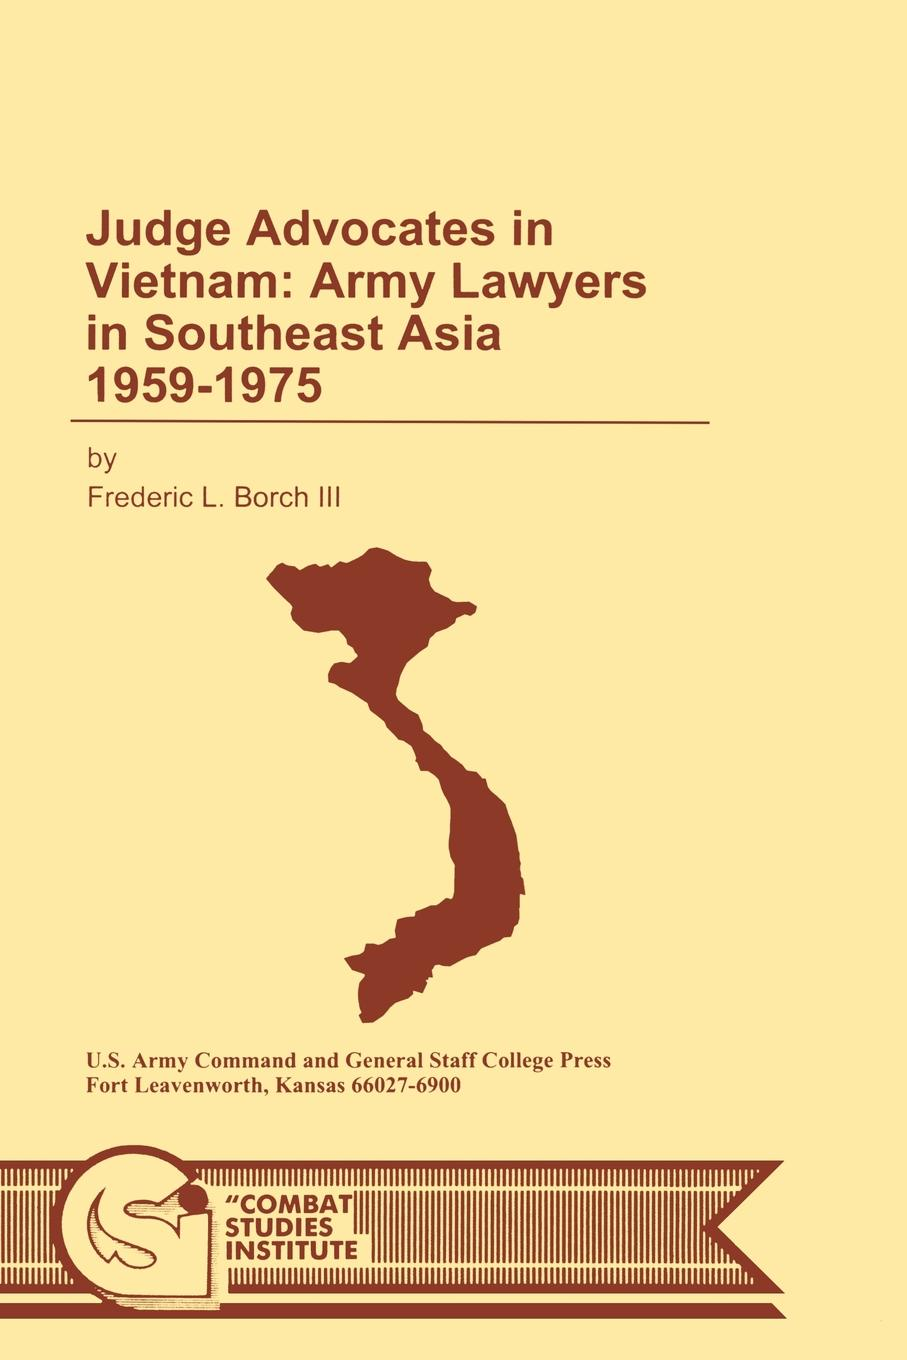 Frederic L. Borch, Combat Studies Institute, U.S. Department of the Army Judge Advocates in Vietnam. Army Lawyers in Southeast Asia 1959-1975 men military tactical boots special force desert ankle combat boots safety outdoor shoes plus new ultralight army boot